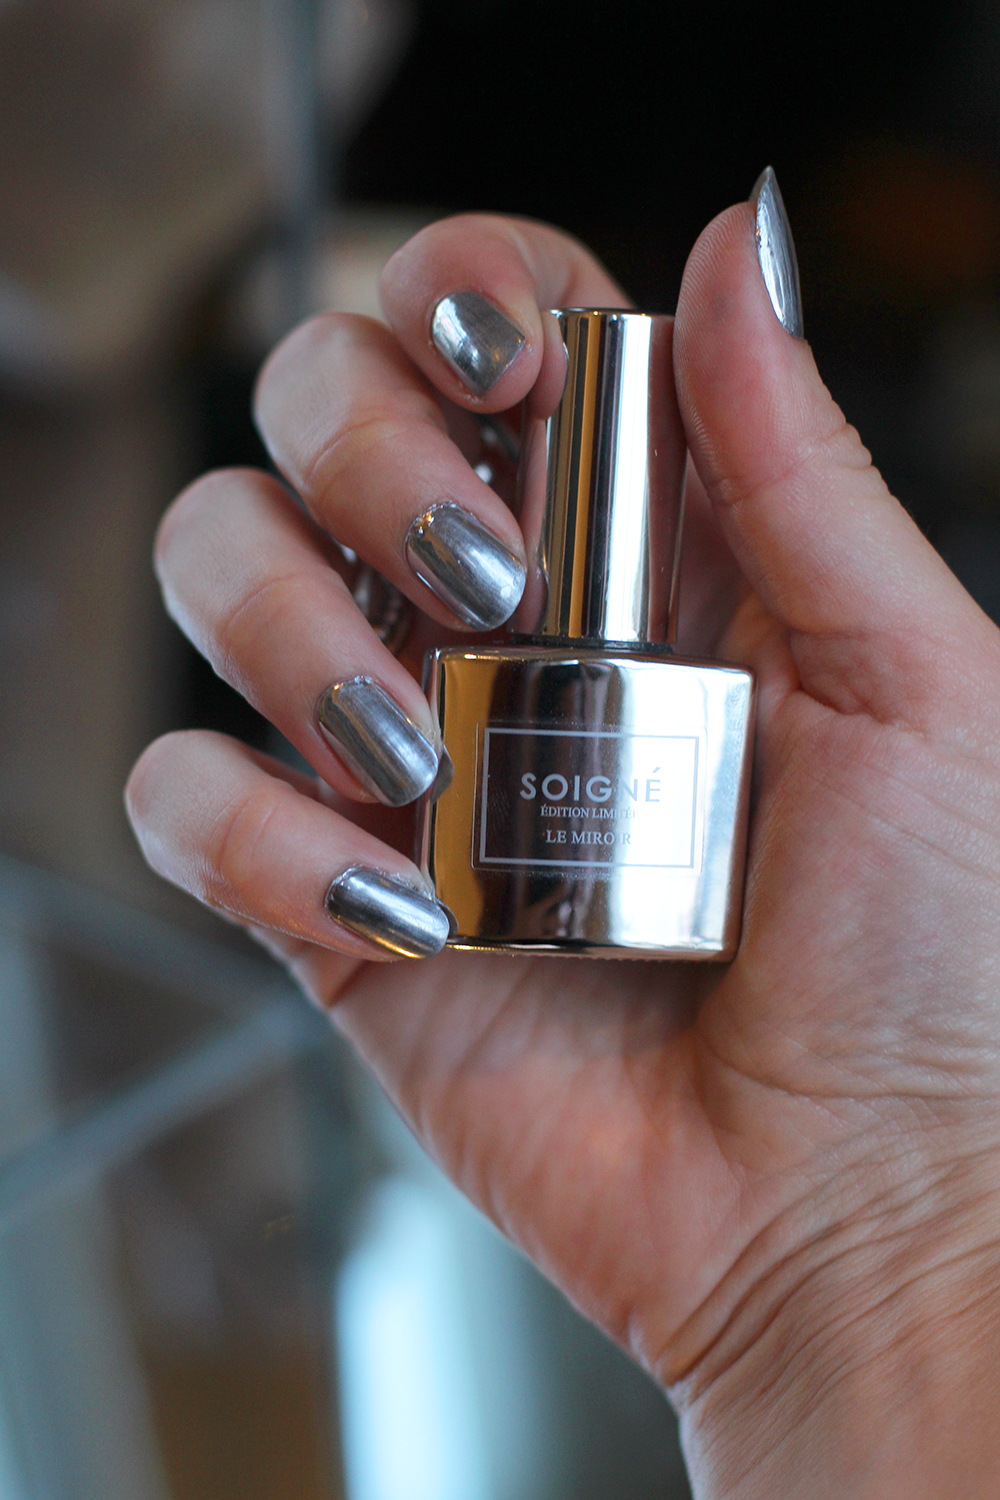 Soigne Le Miroir mirror shine nail varnish - UK beauty blog